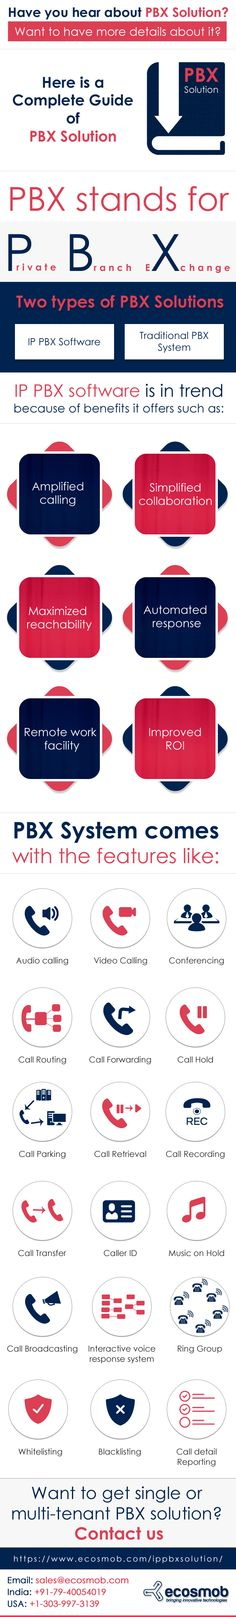 PBX Solution can benefit you in many ways. How? Have a look at this infographic:   #PBX #IPPBX #VoIP